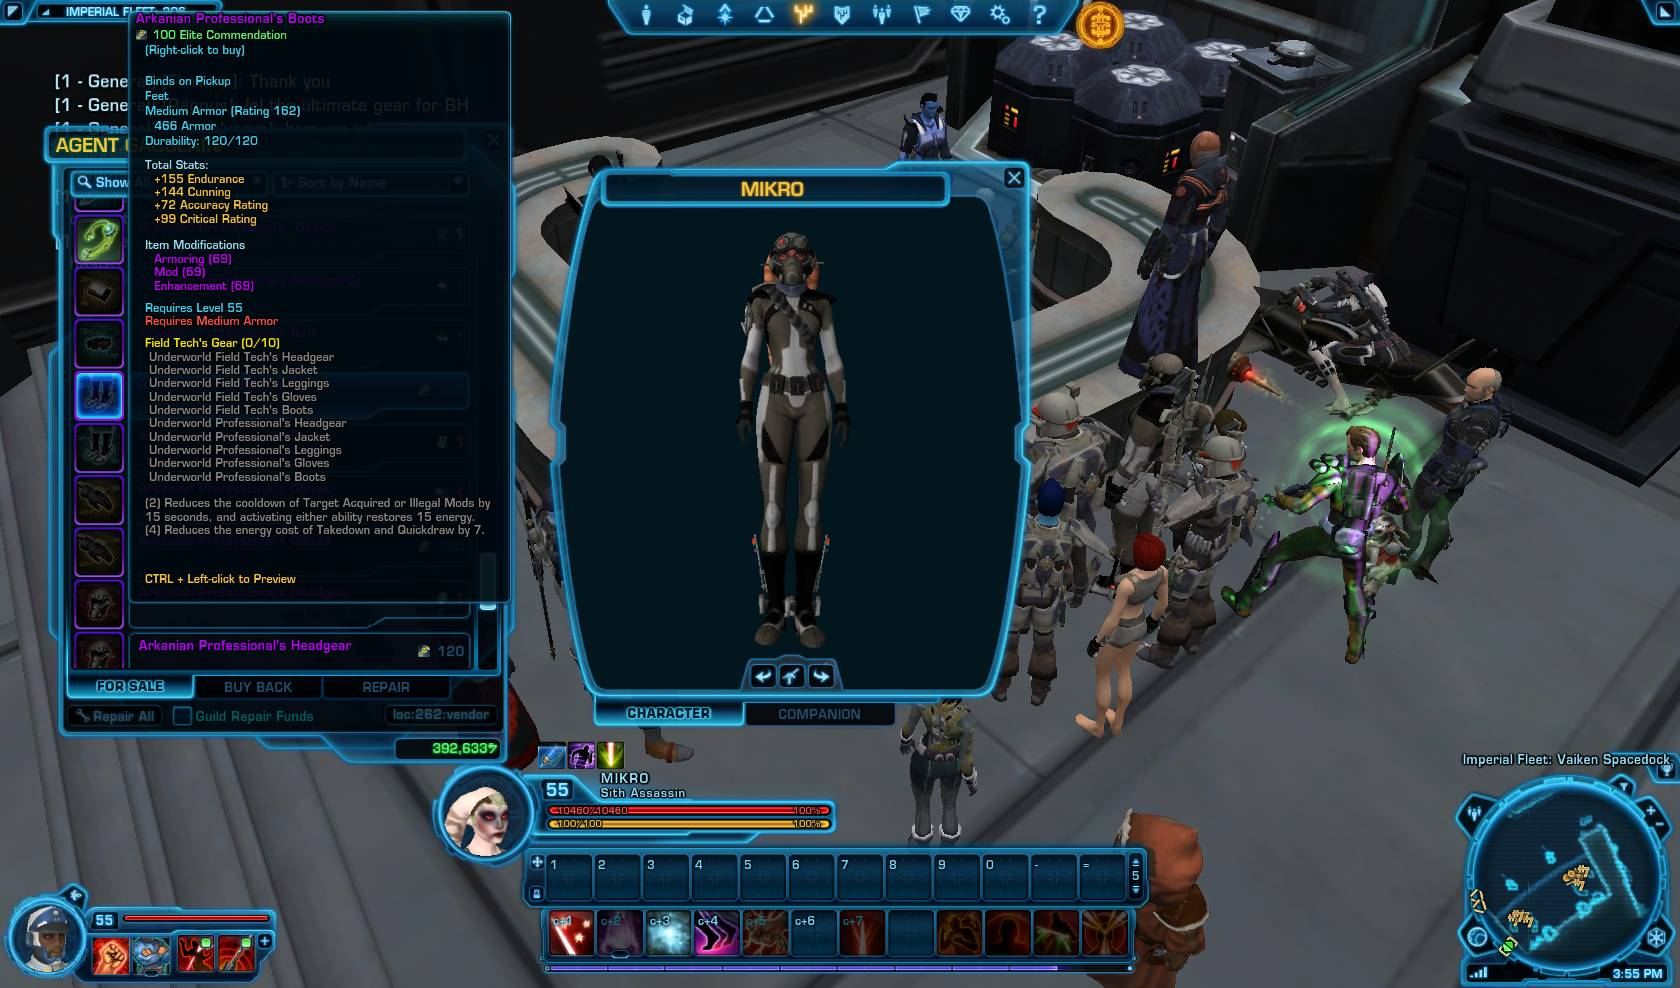 swtor_arkanian_professional